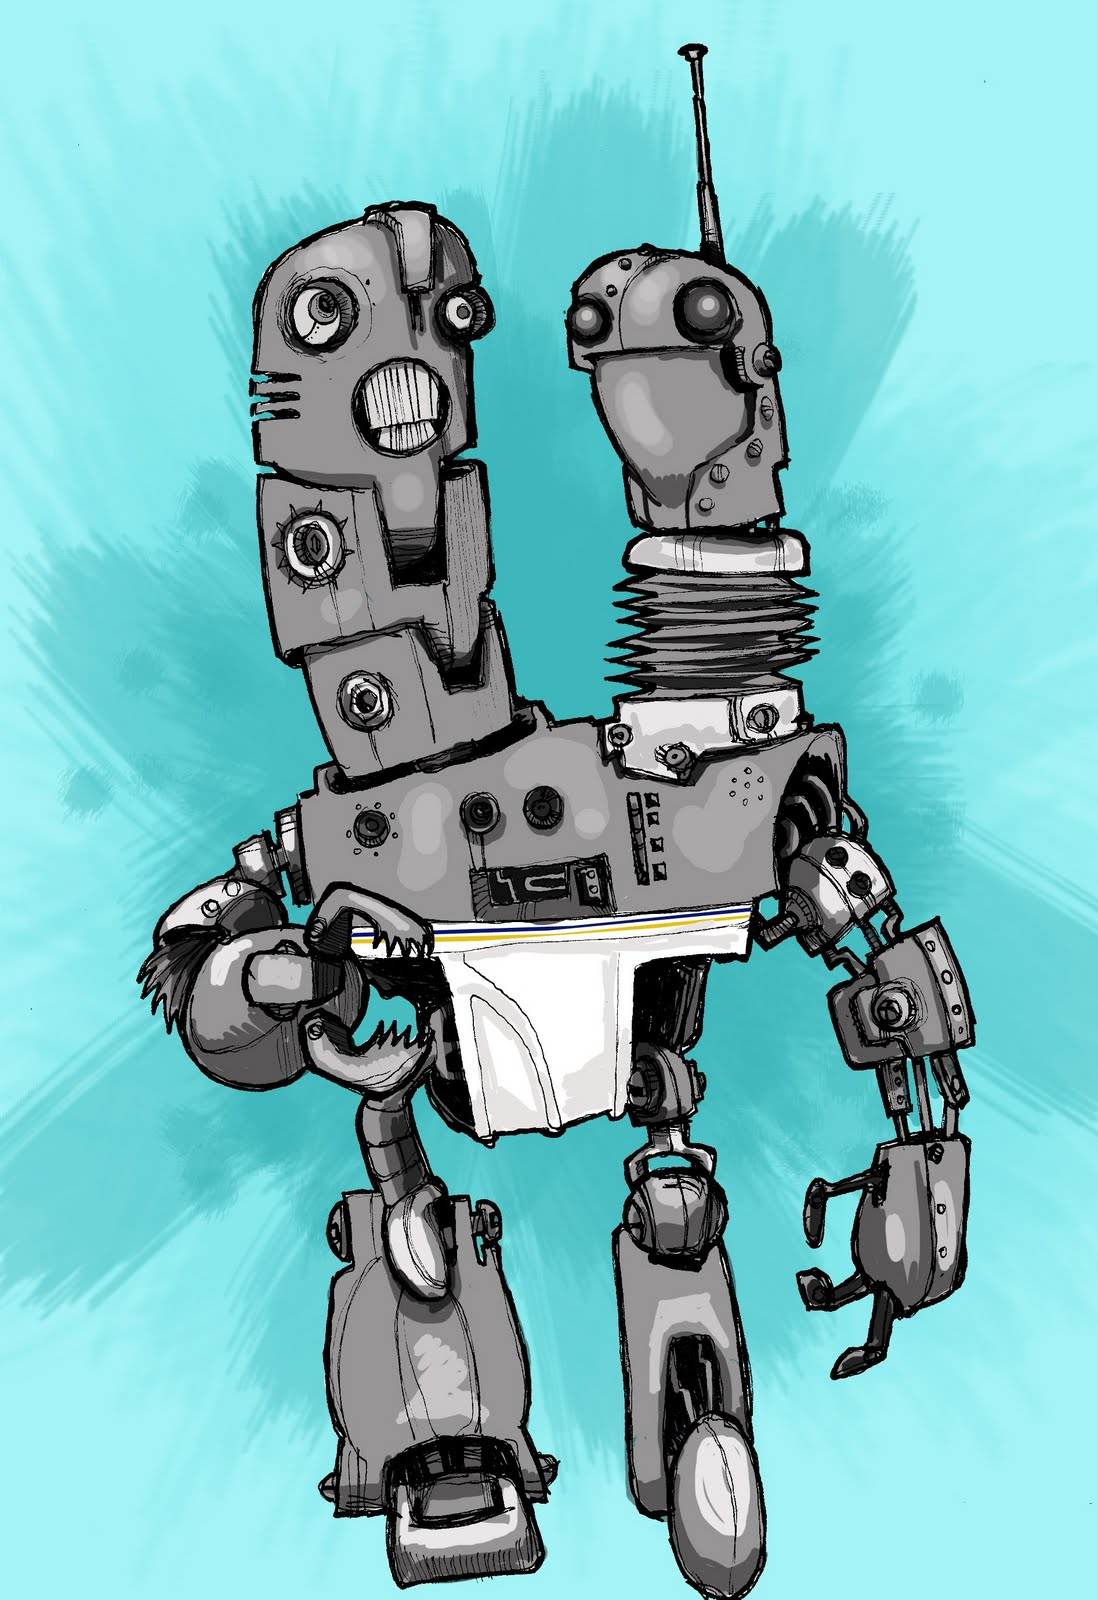 2-headed-underbot